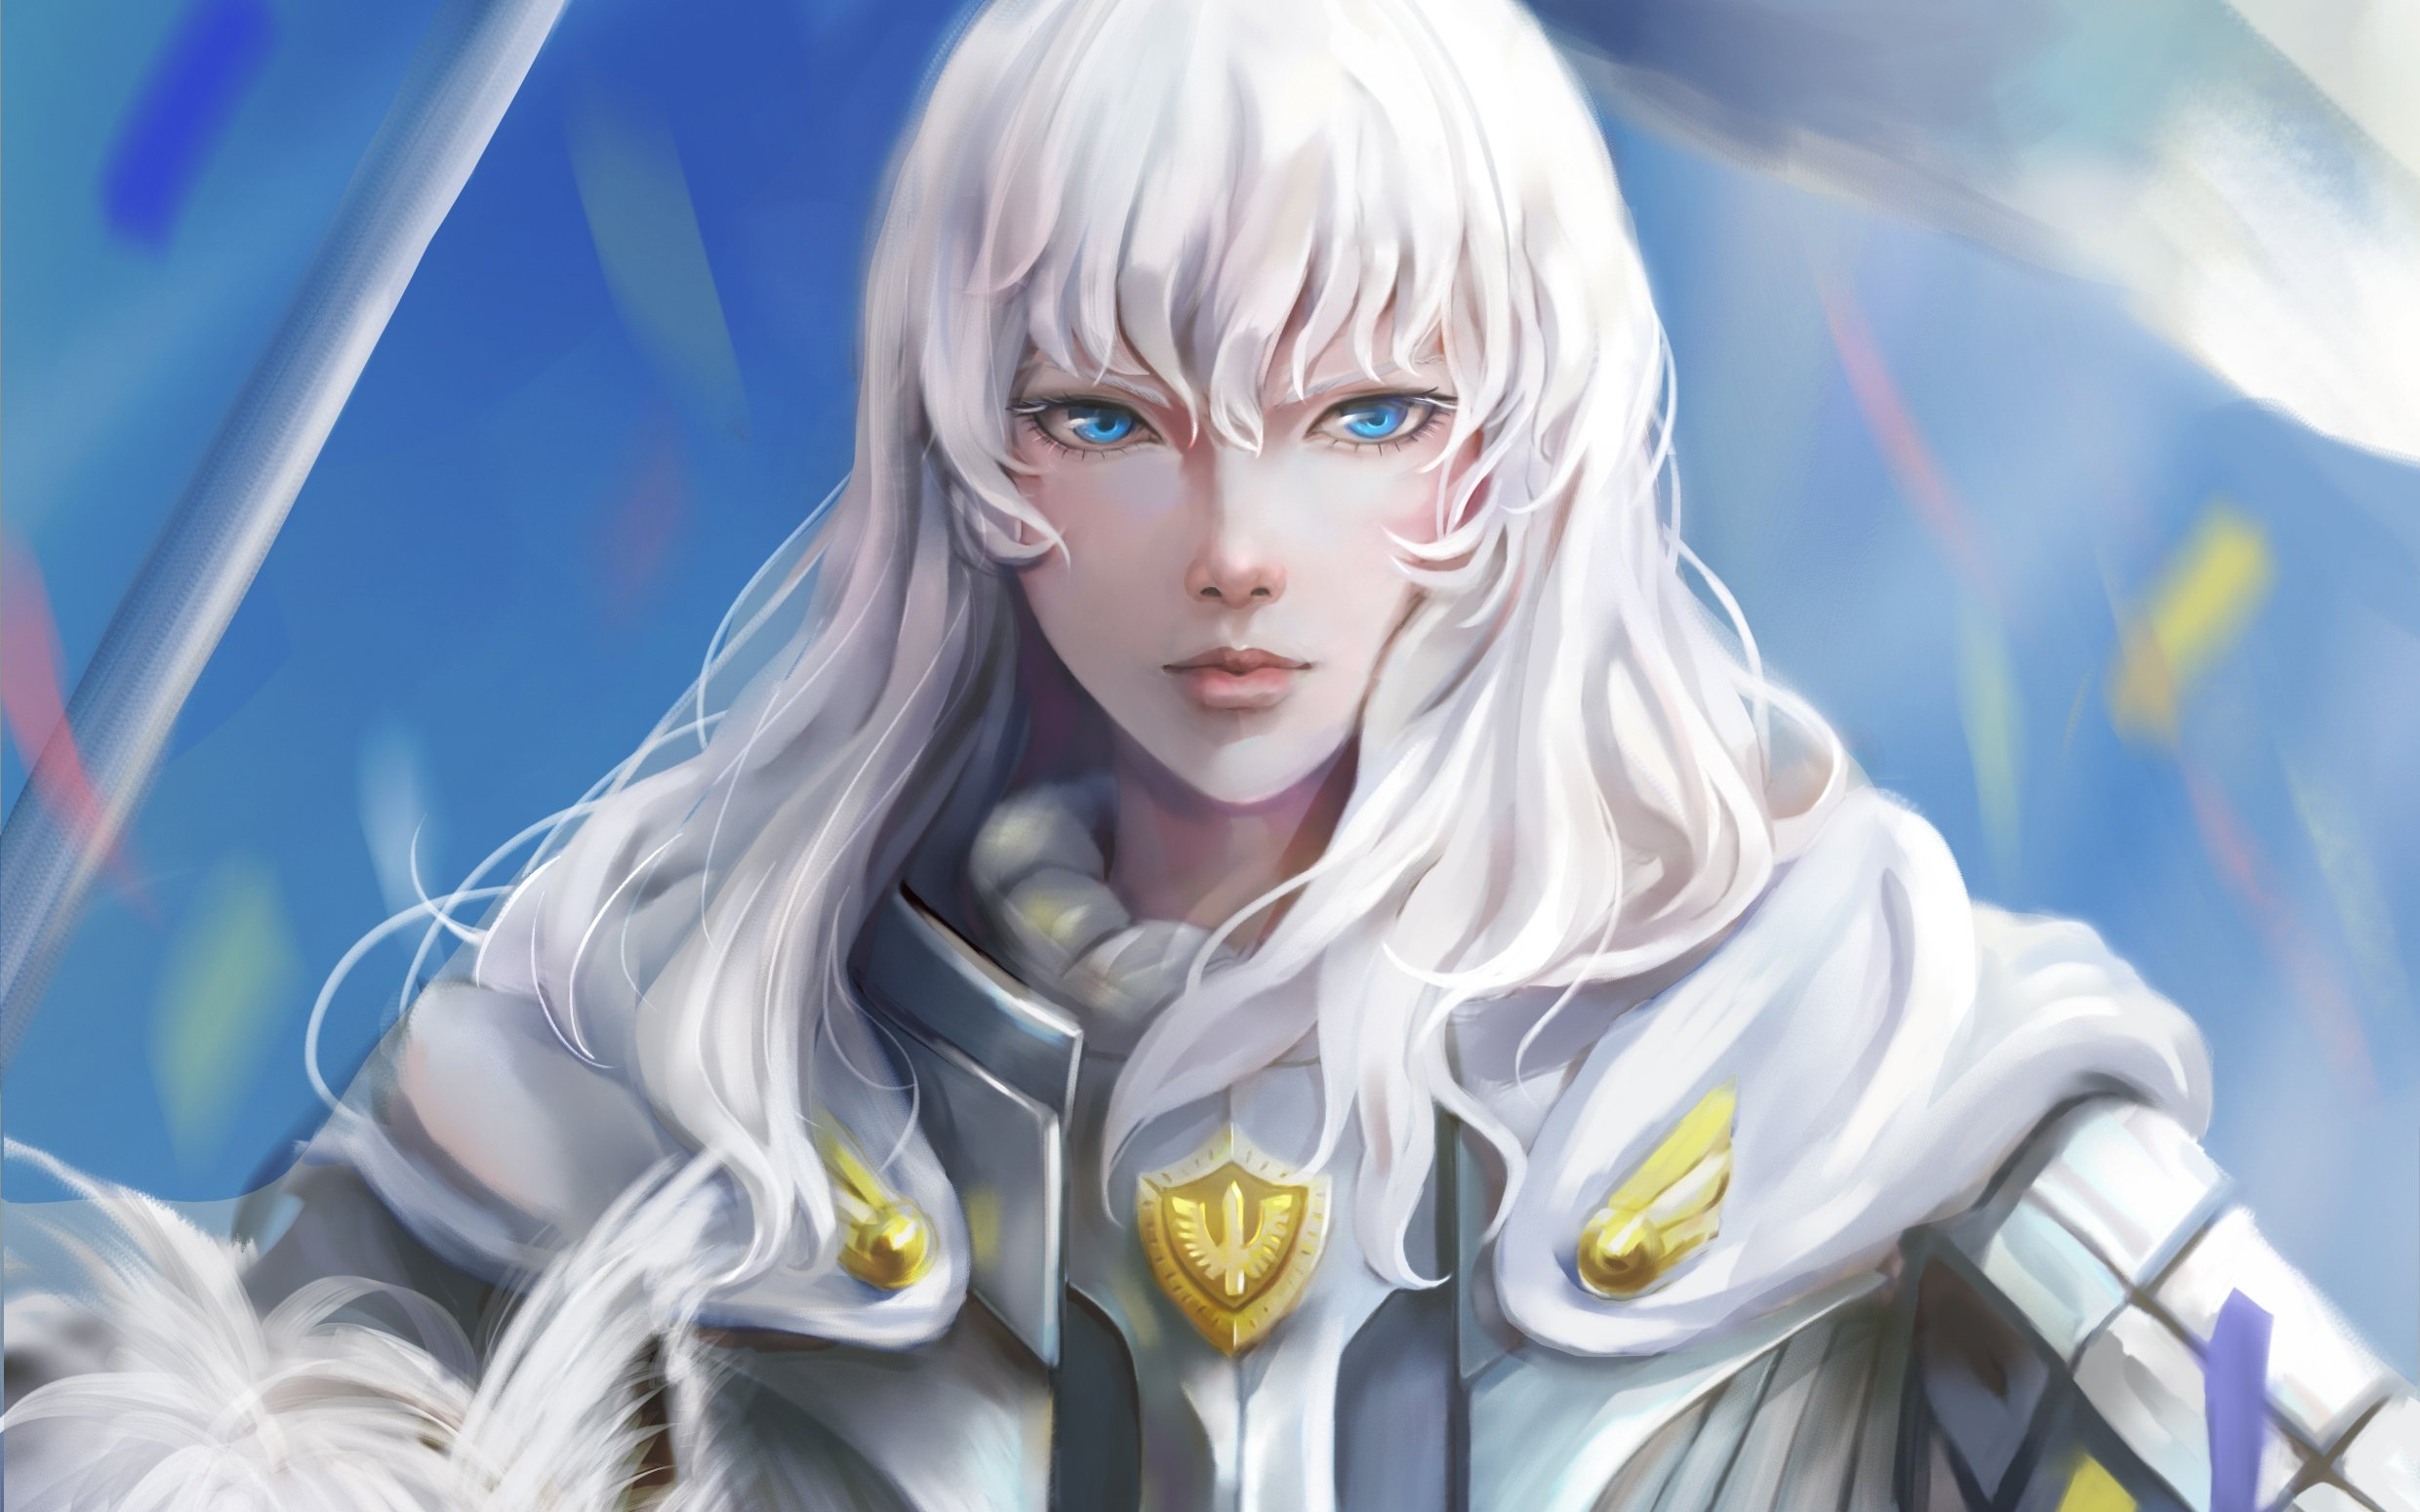 Download 2480x1550 Griffith Berserk White Hair Blue Eyes 2480x1550